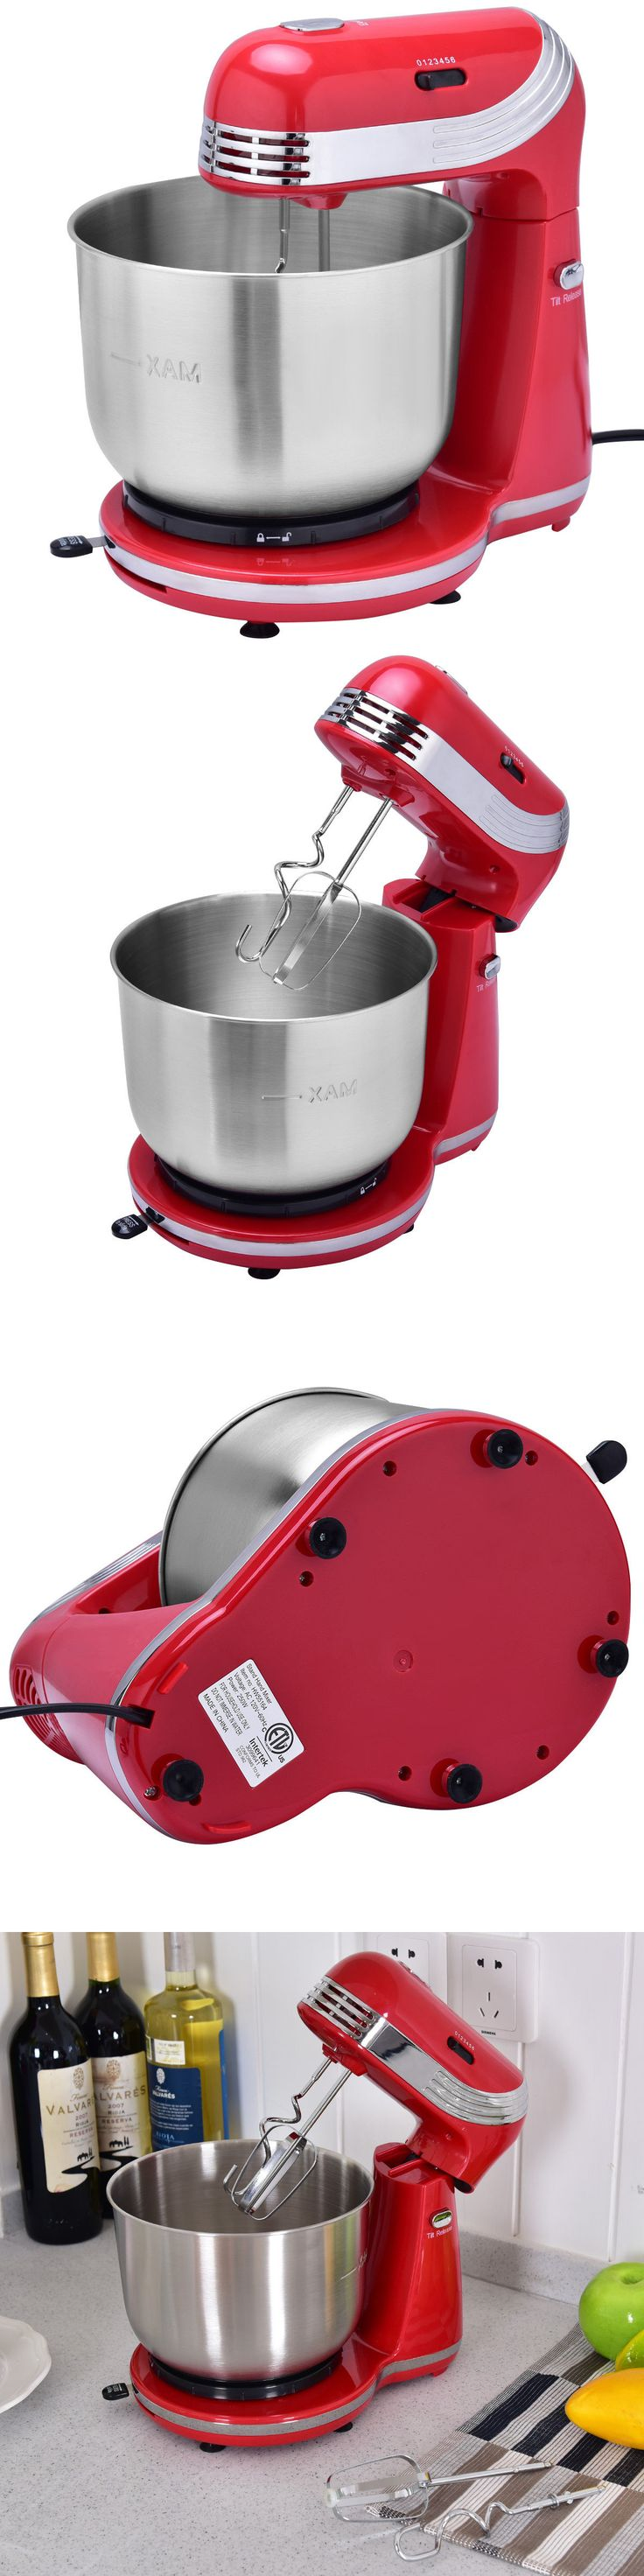 5l accents range only electricals co uk small kitchen appliances - Small Kitchen Appliances Electric Stand Mixer W 6 Quart Bowl 250w Tilt Head 6